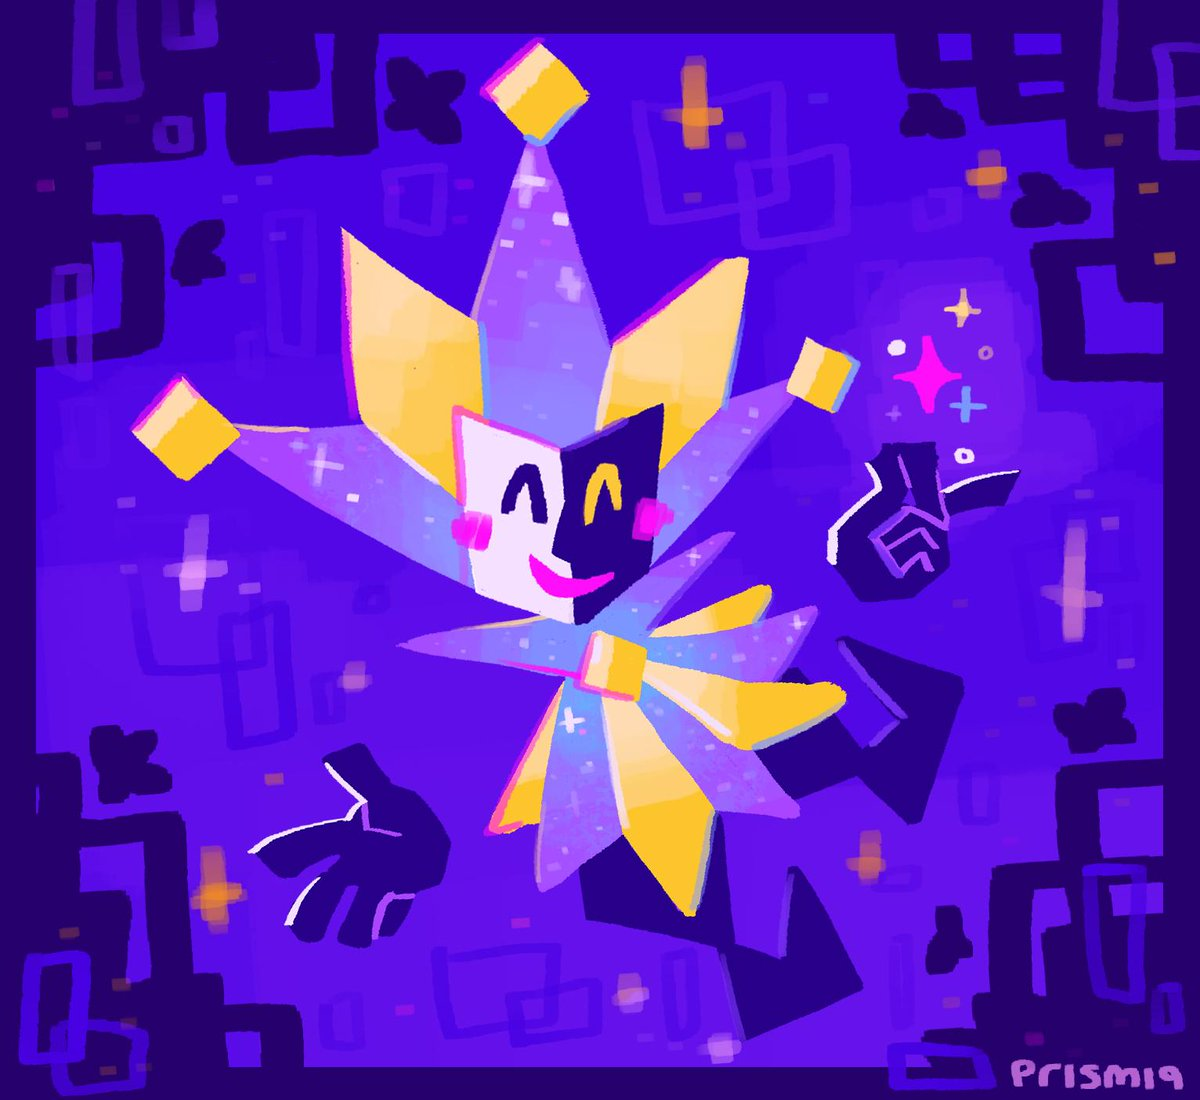 Hey #transmascartists :) I&#39;m a character designer and fan-artist who really likes the colour purple and sparkly things <br>http://pic.twitter.com/WKaPJ6gO3k